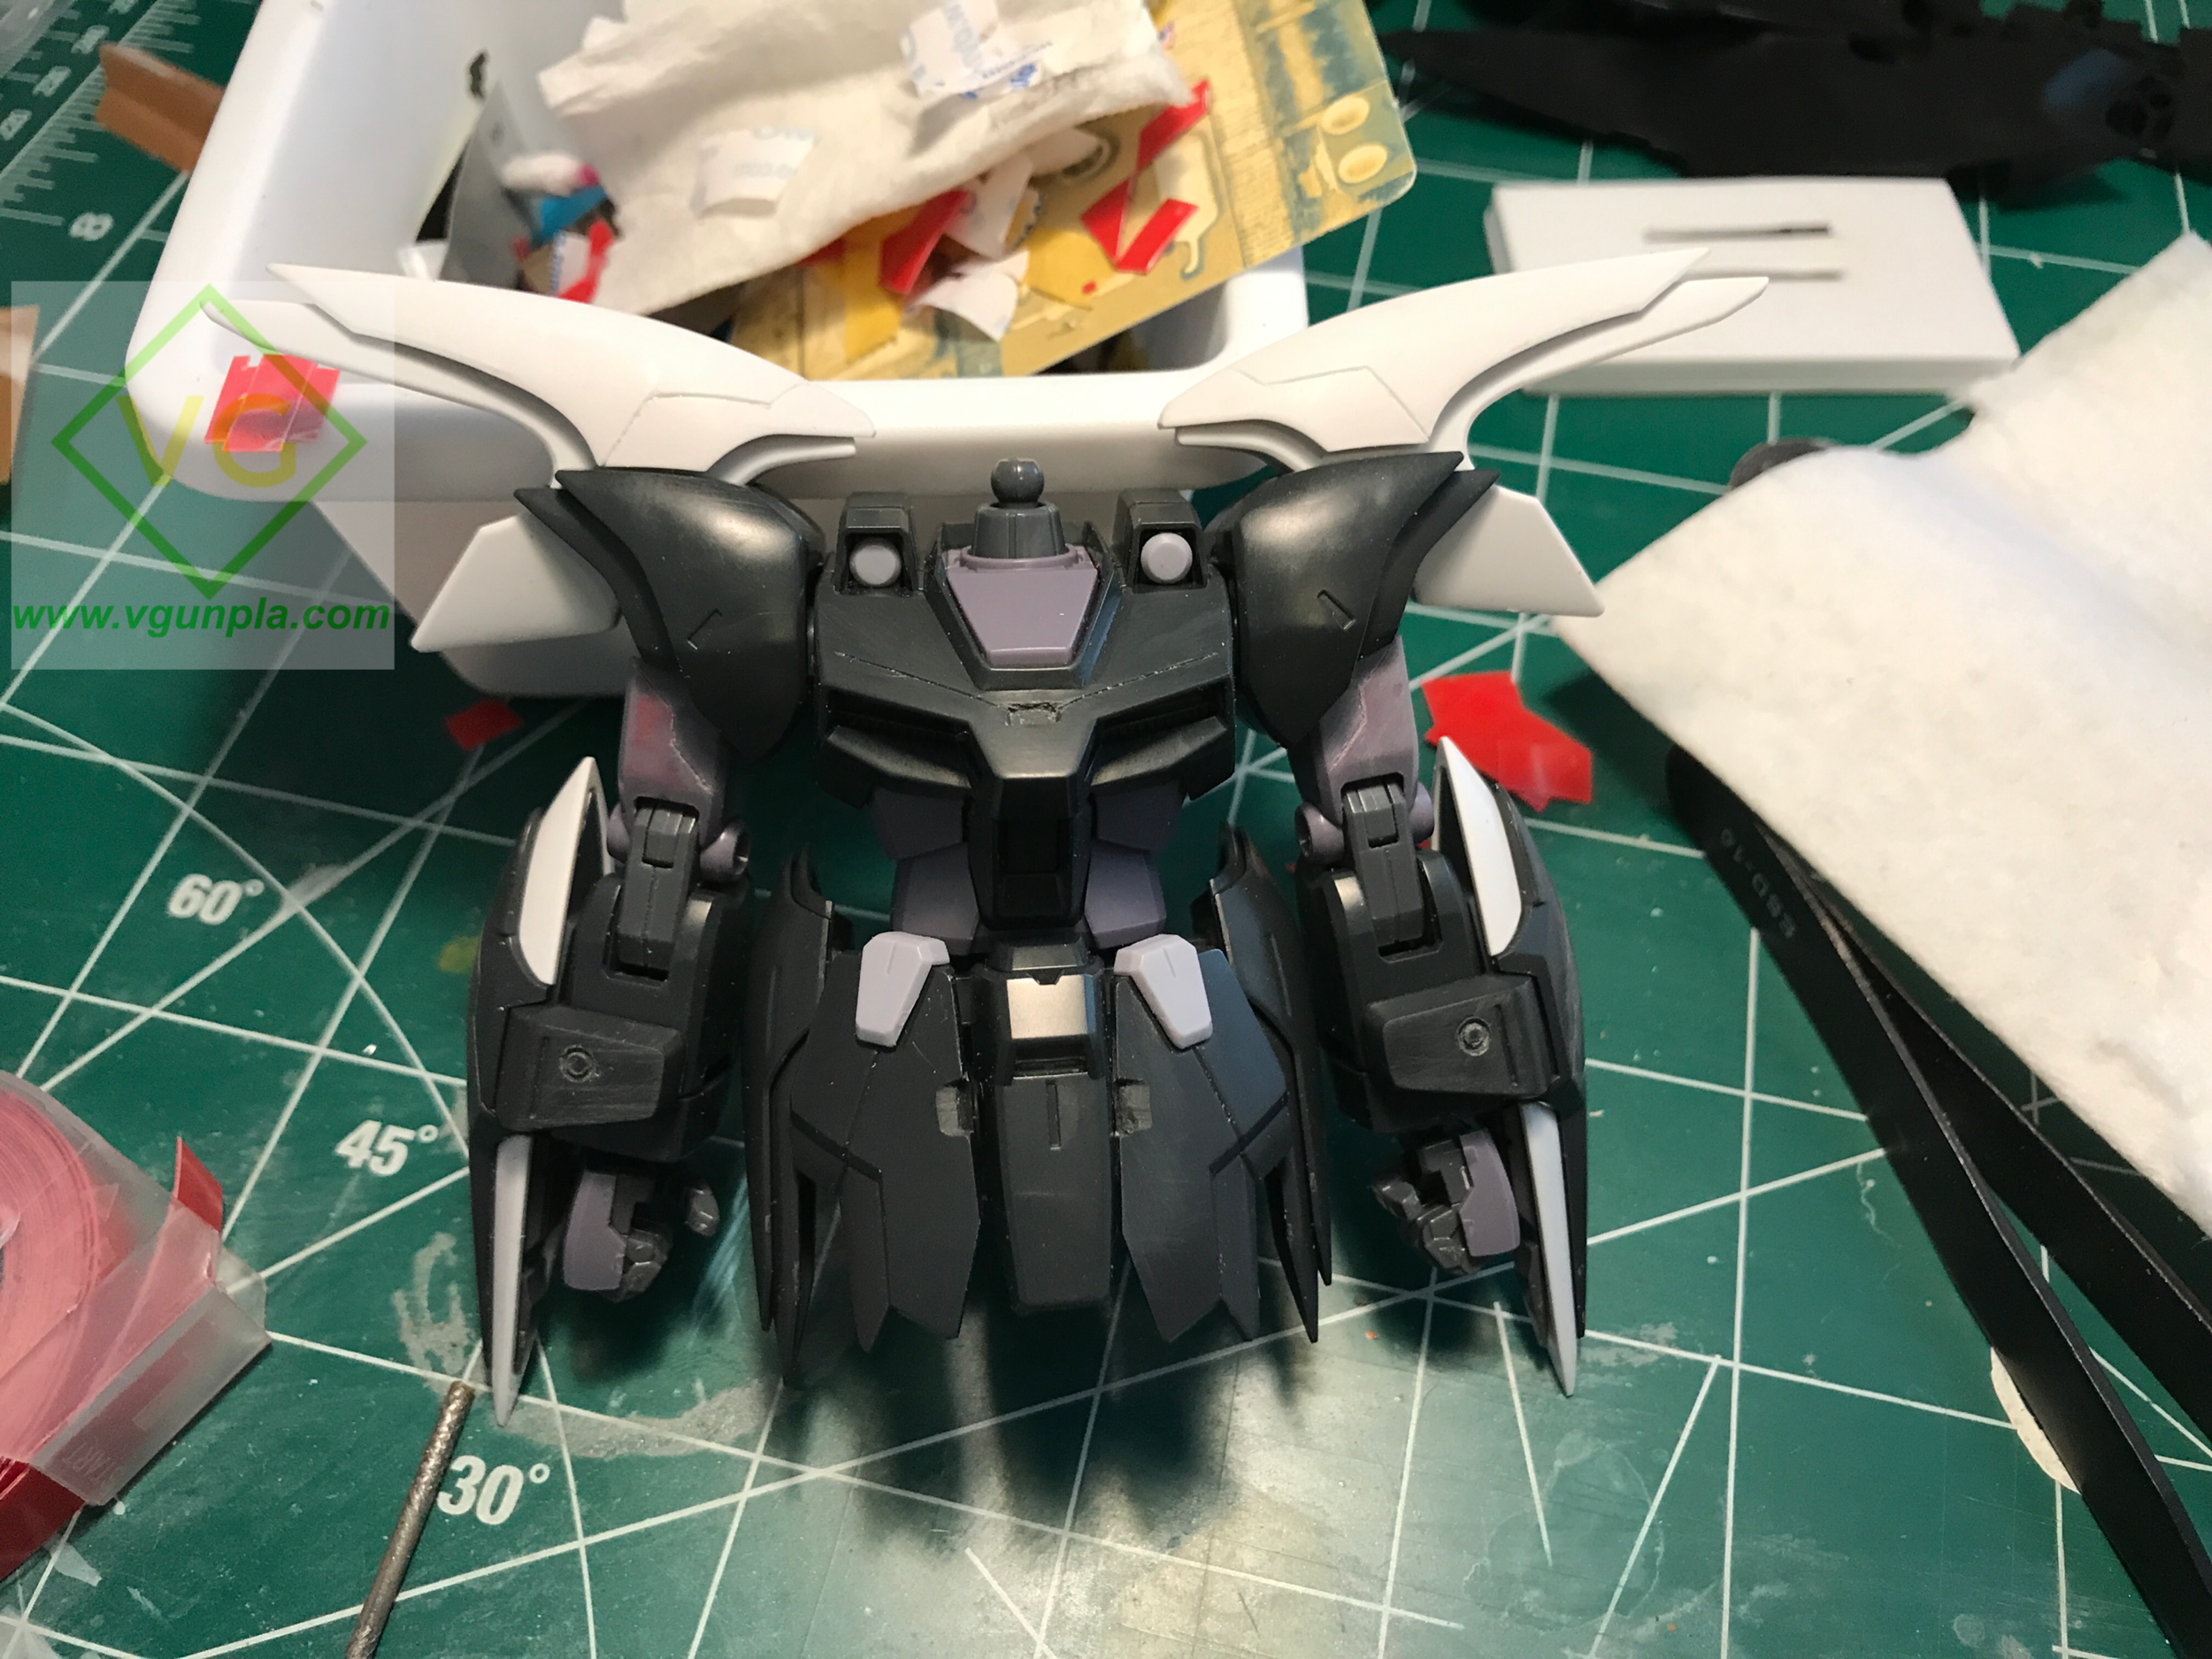 Arms done! You can see most arm details here: the circles on the grieves, panel lines on the grieves upper arms and shoulders, and the notches on the skirt and center armor.